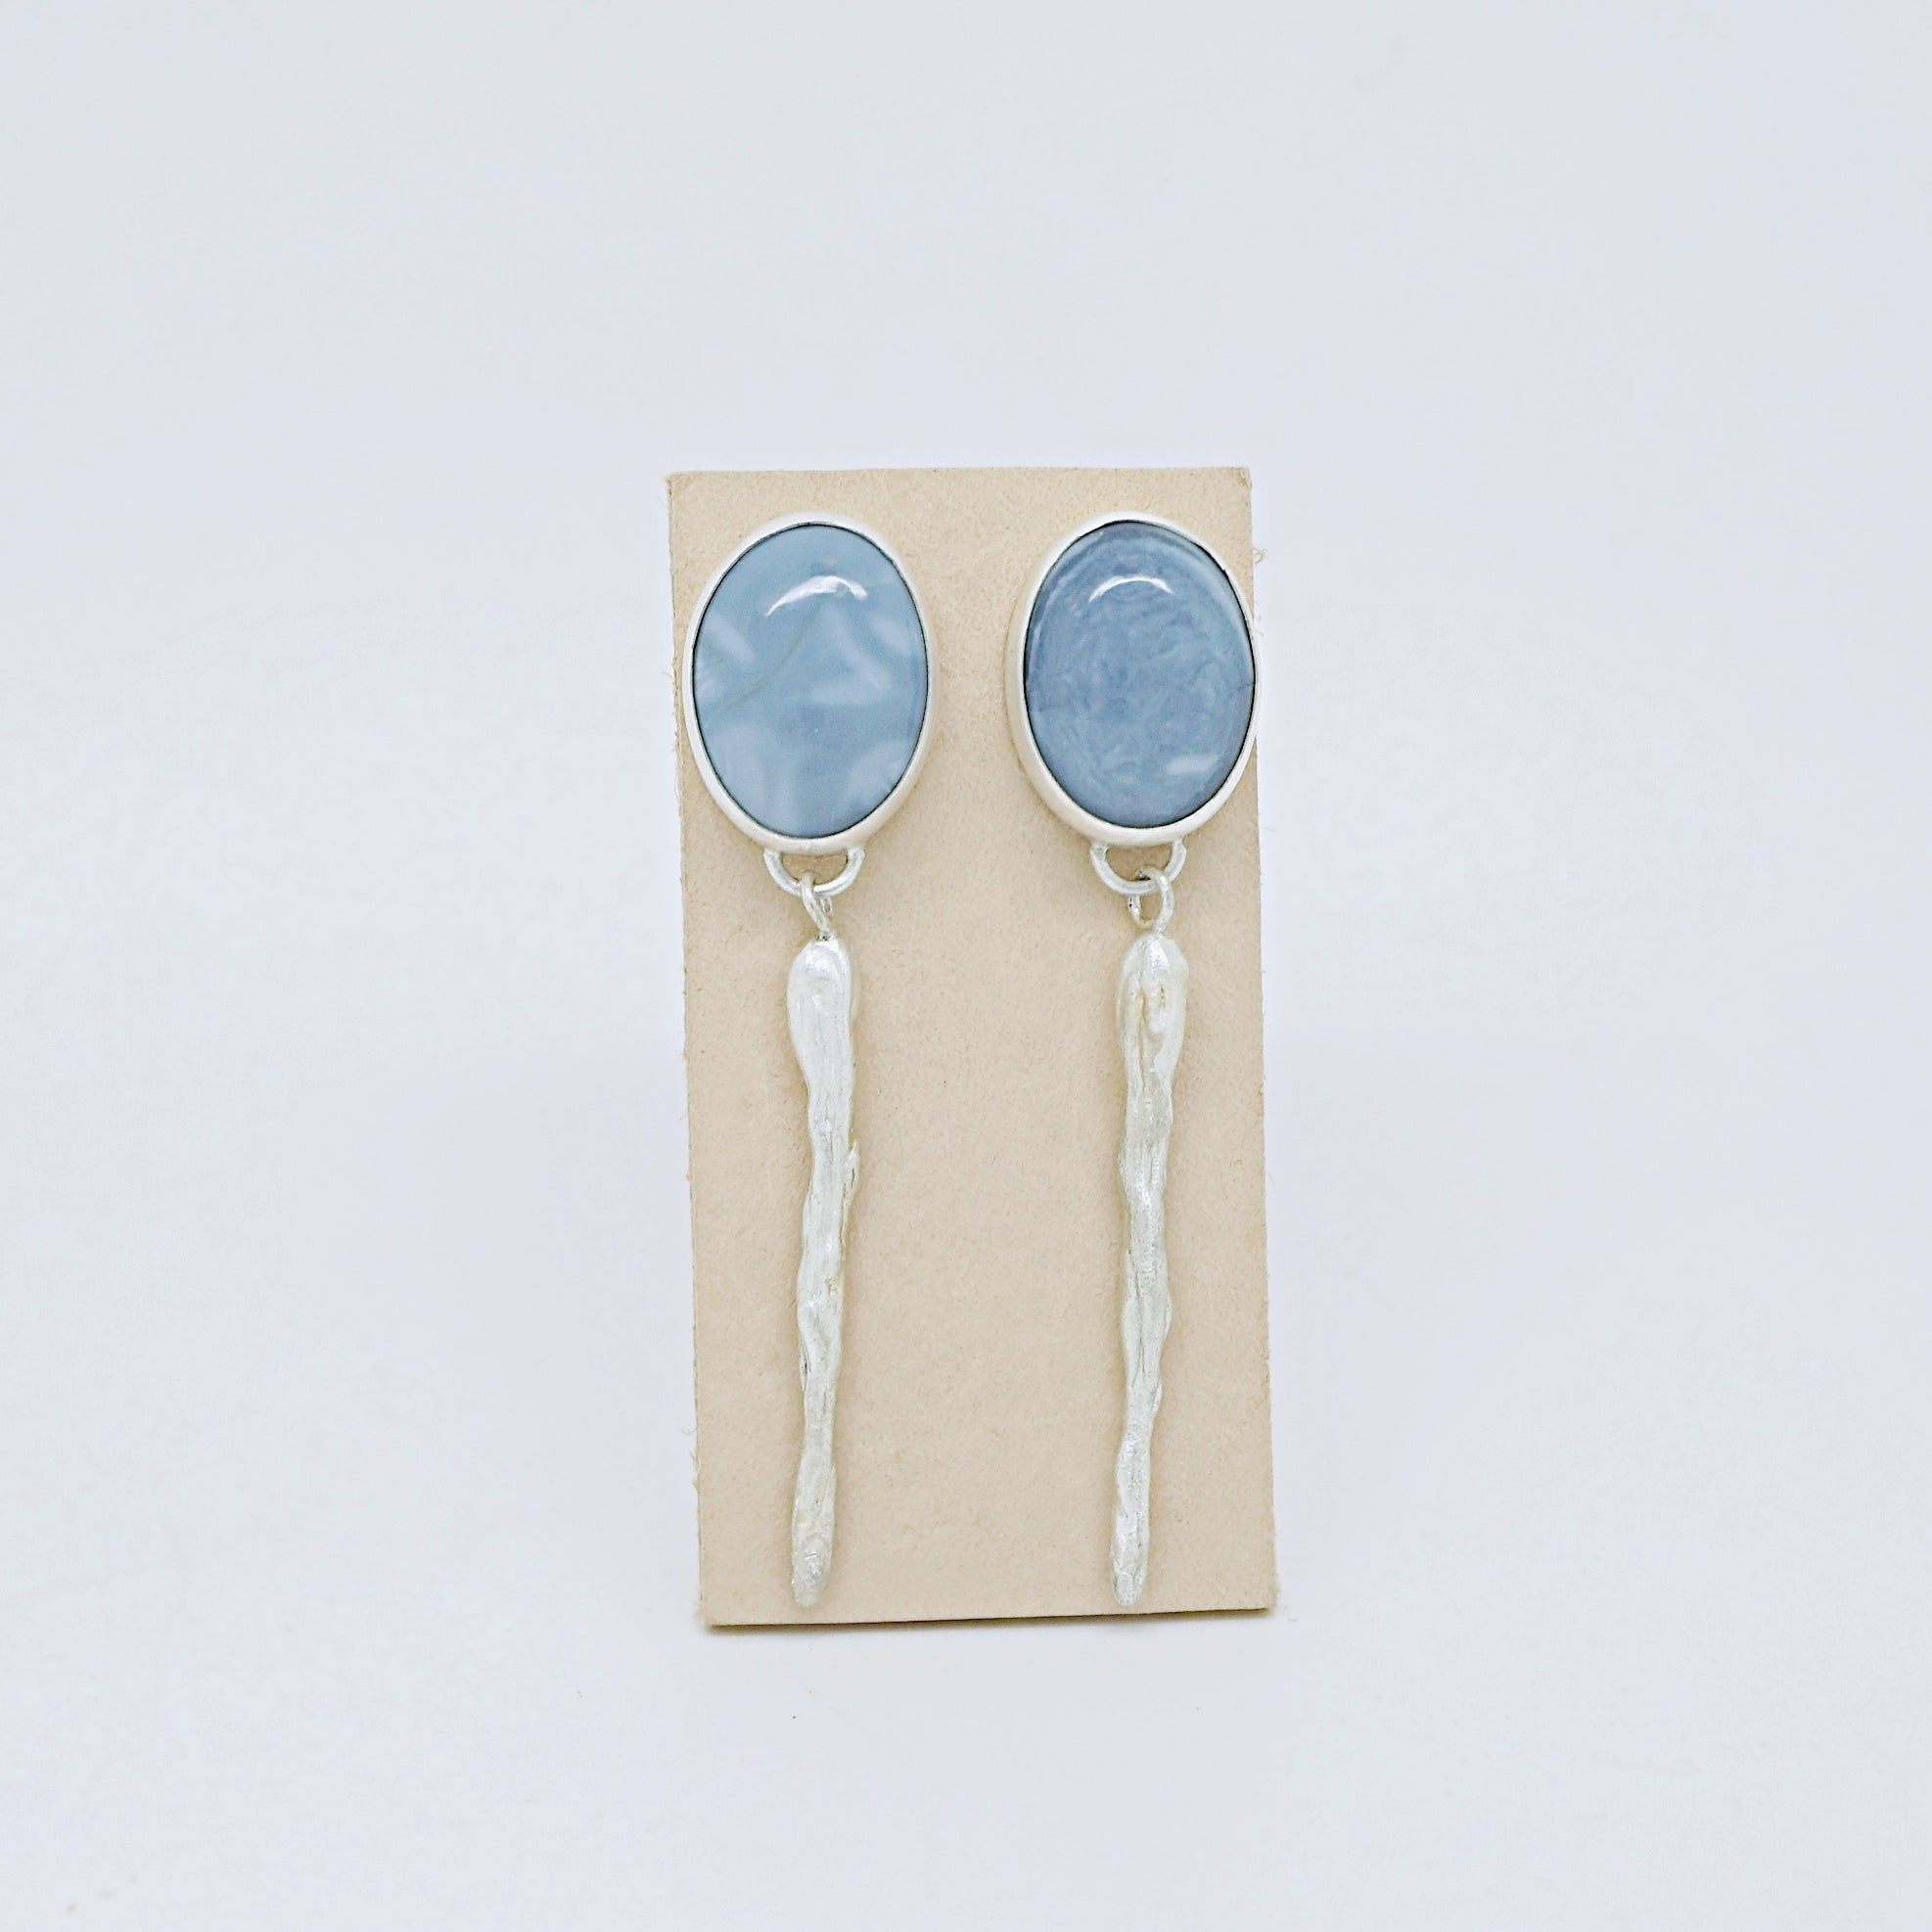 Blue opal earrings with silver drops